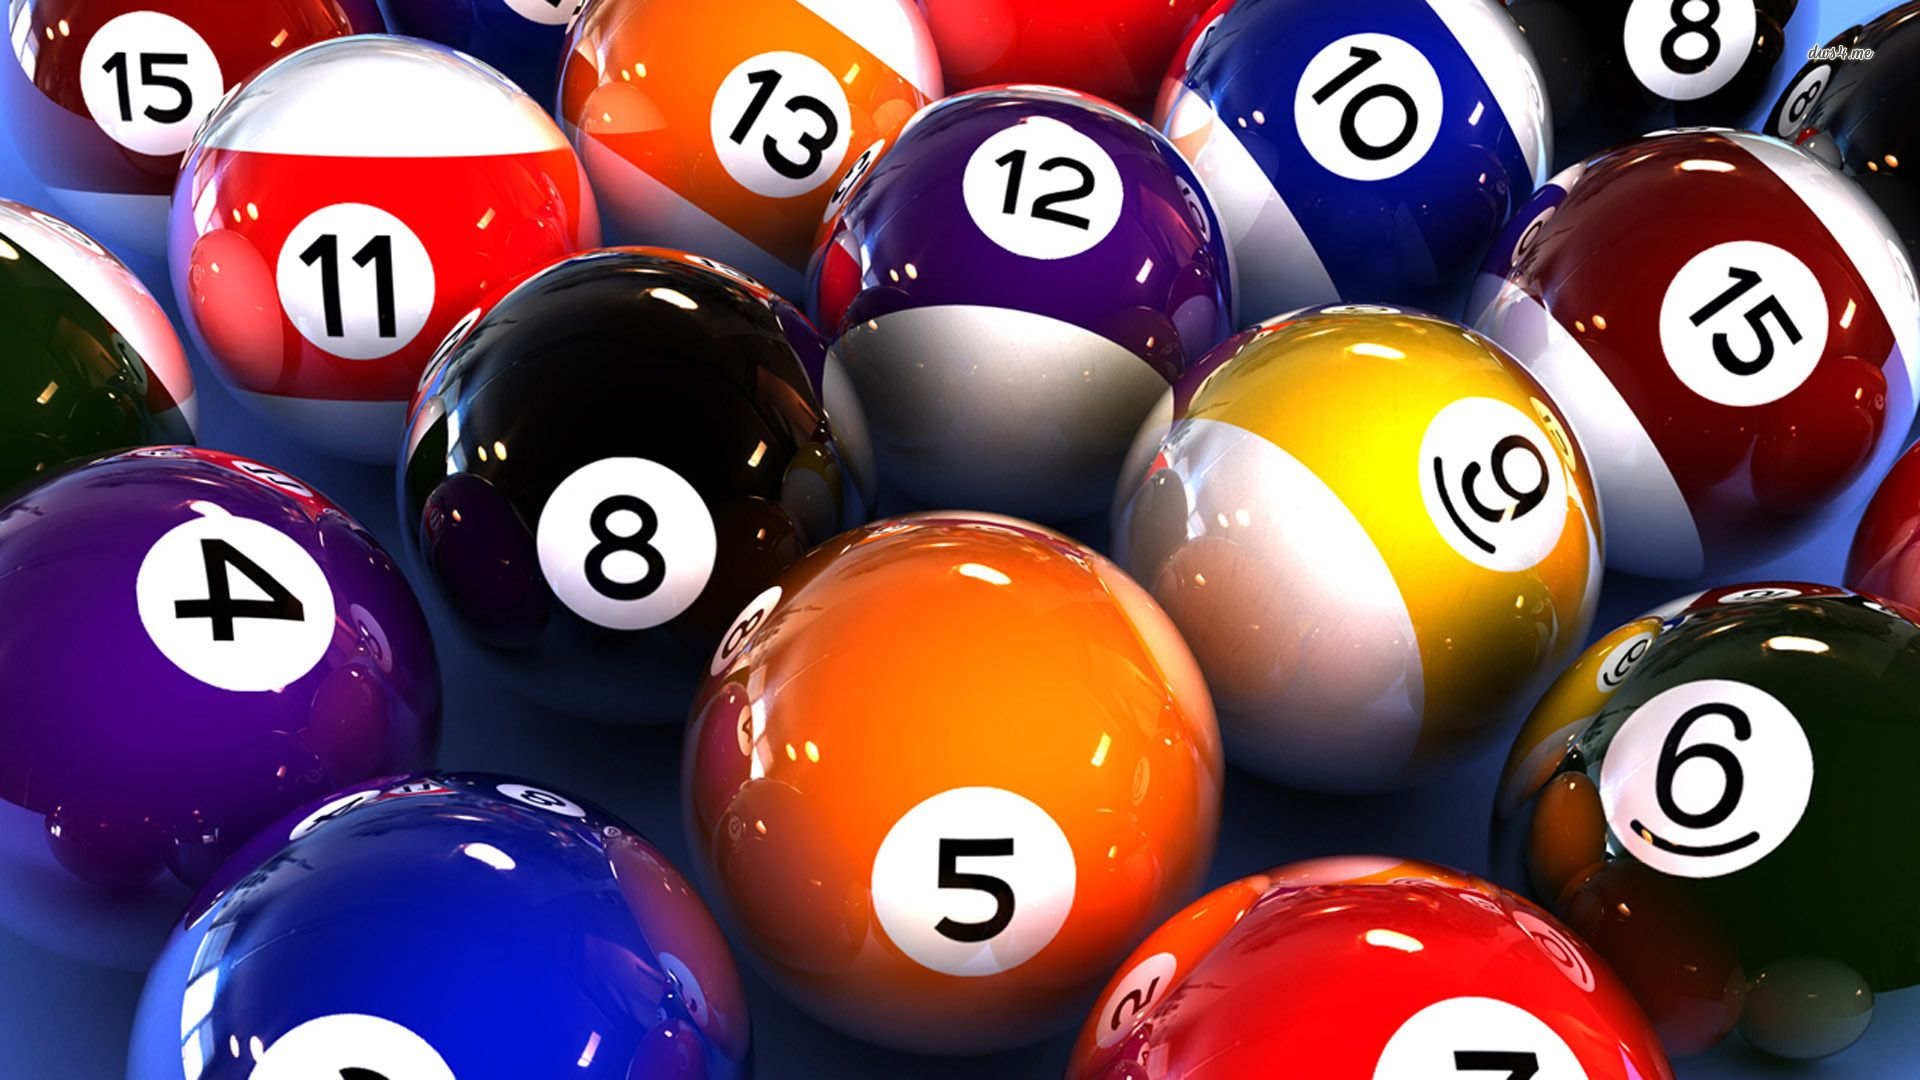 Billiard Balls Wallpaper 1920x1080 Billiards Billiard Balls Pool Balls